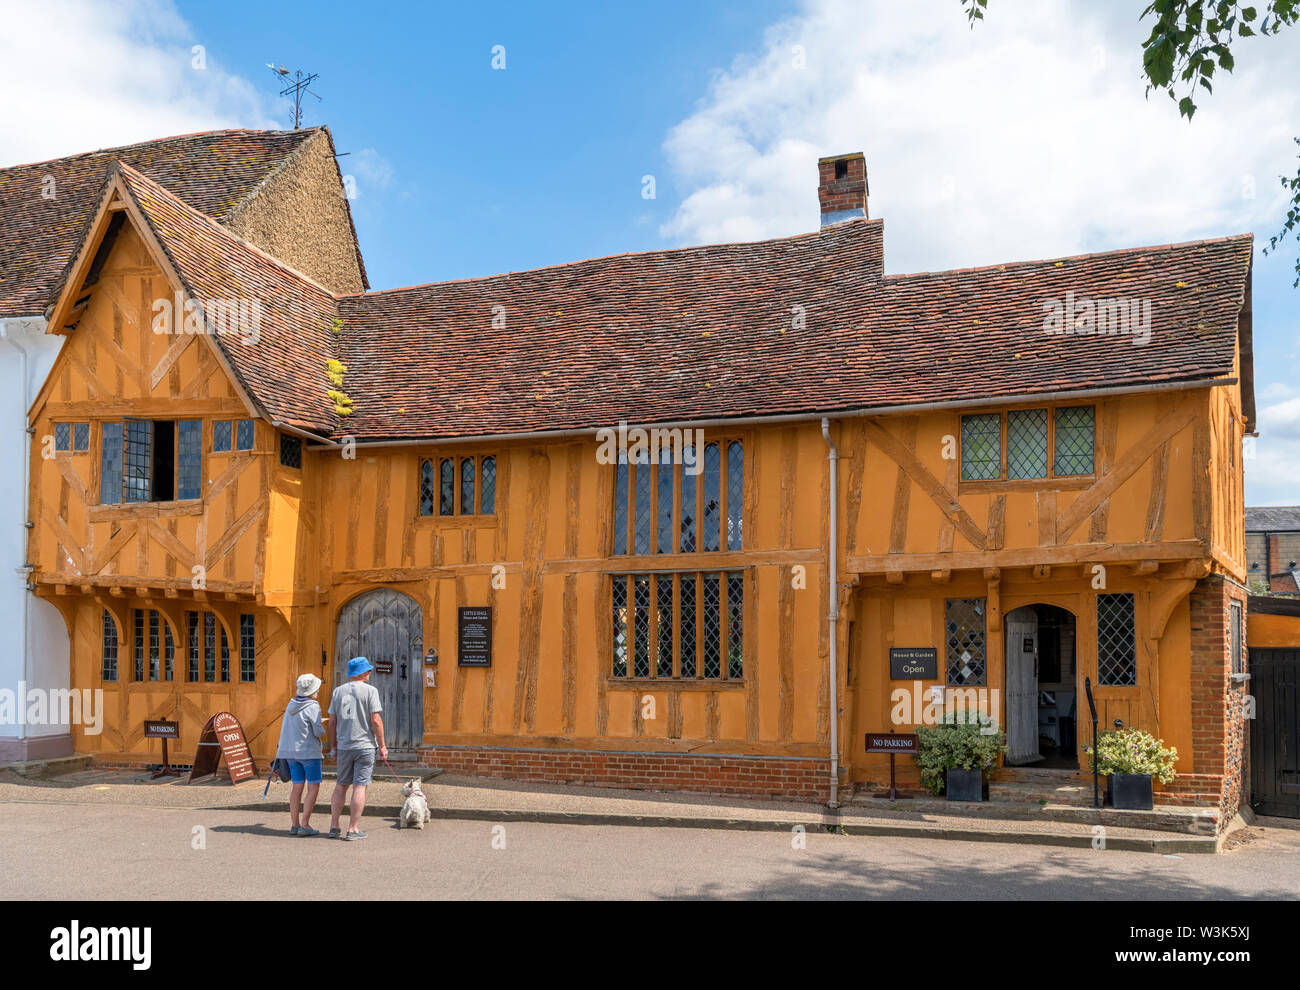 Little Hall, a late 14thC timber-famed house in the Market Place, Lavenham, Suffolk, England, UK - Stock Image